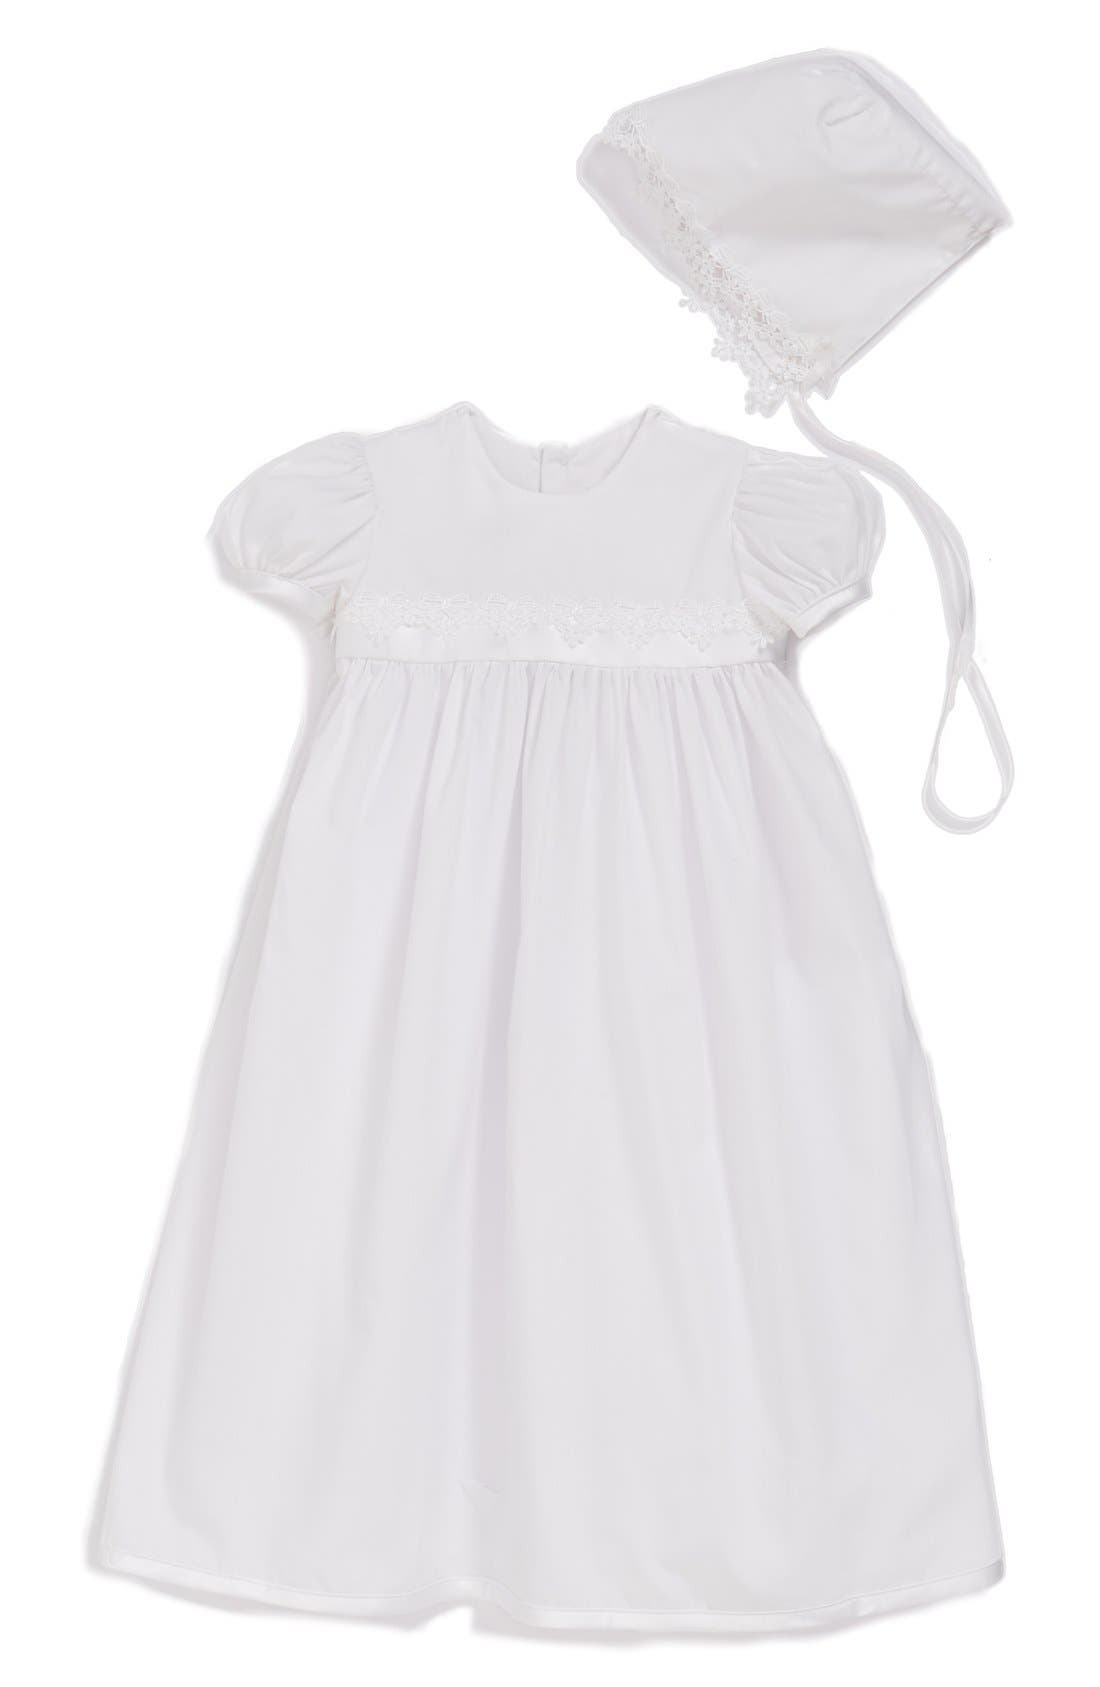 Alternate Image 1 Selected - Little Things Mean a Lot Christening Gown and Bonnet Set (Baby Girls)